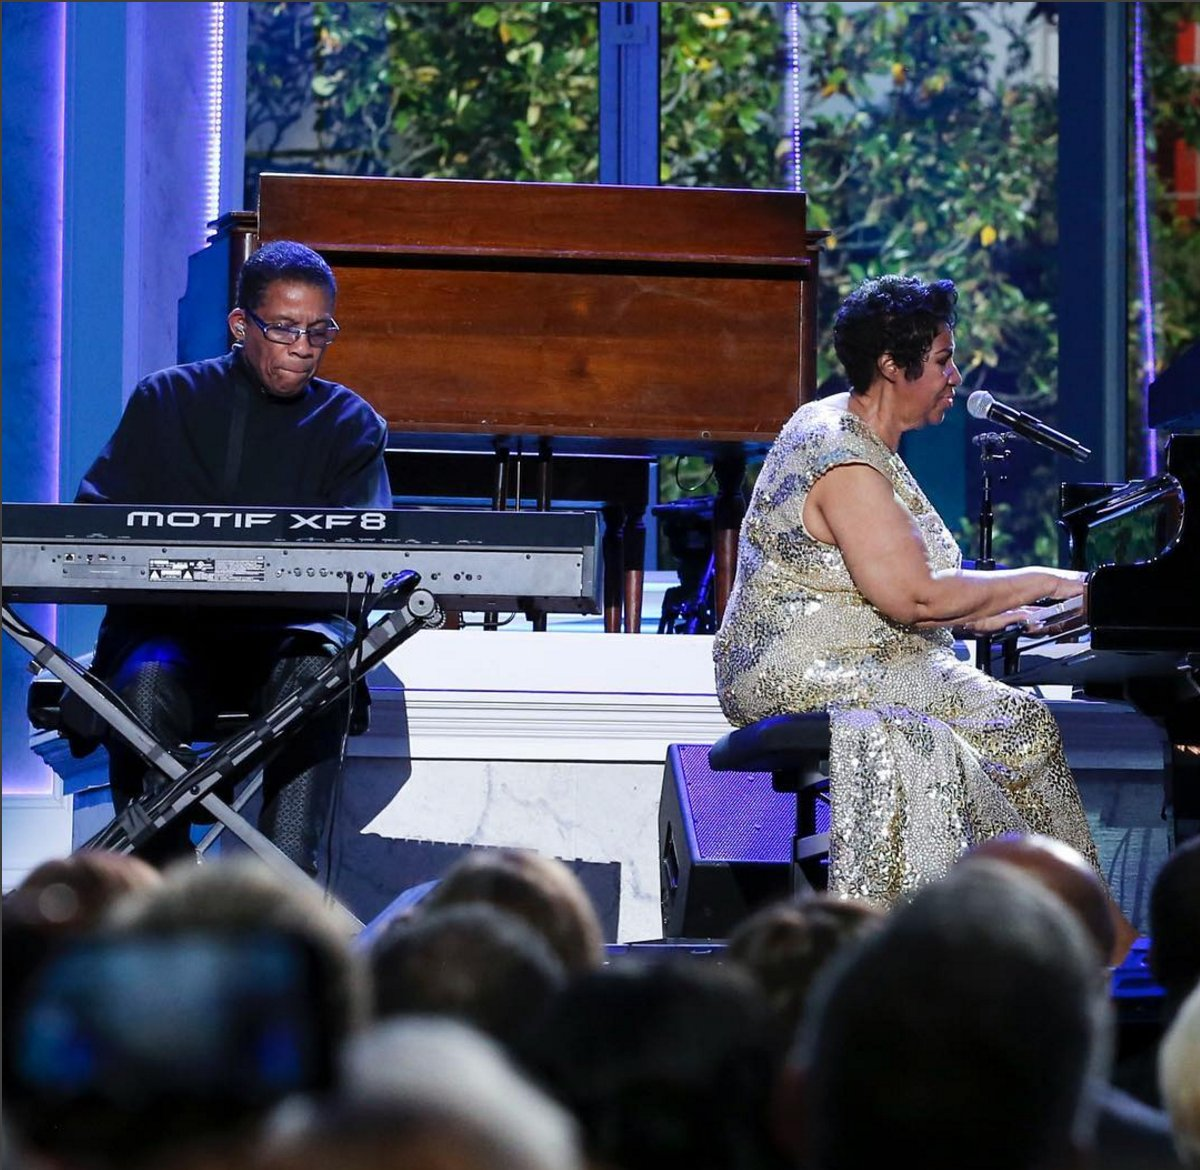 Watch last night's #InternationalJazzDay concert at the @WhiteHouse in its entirety at https://t.co/AH83x2CYmS! https://t.co/BrbV2IVYx8